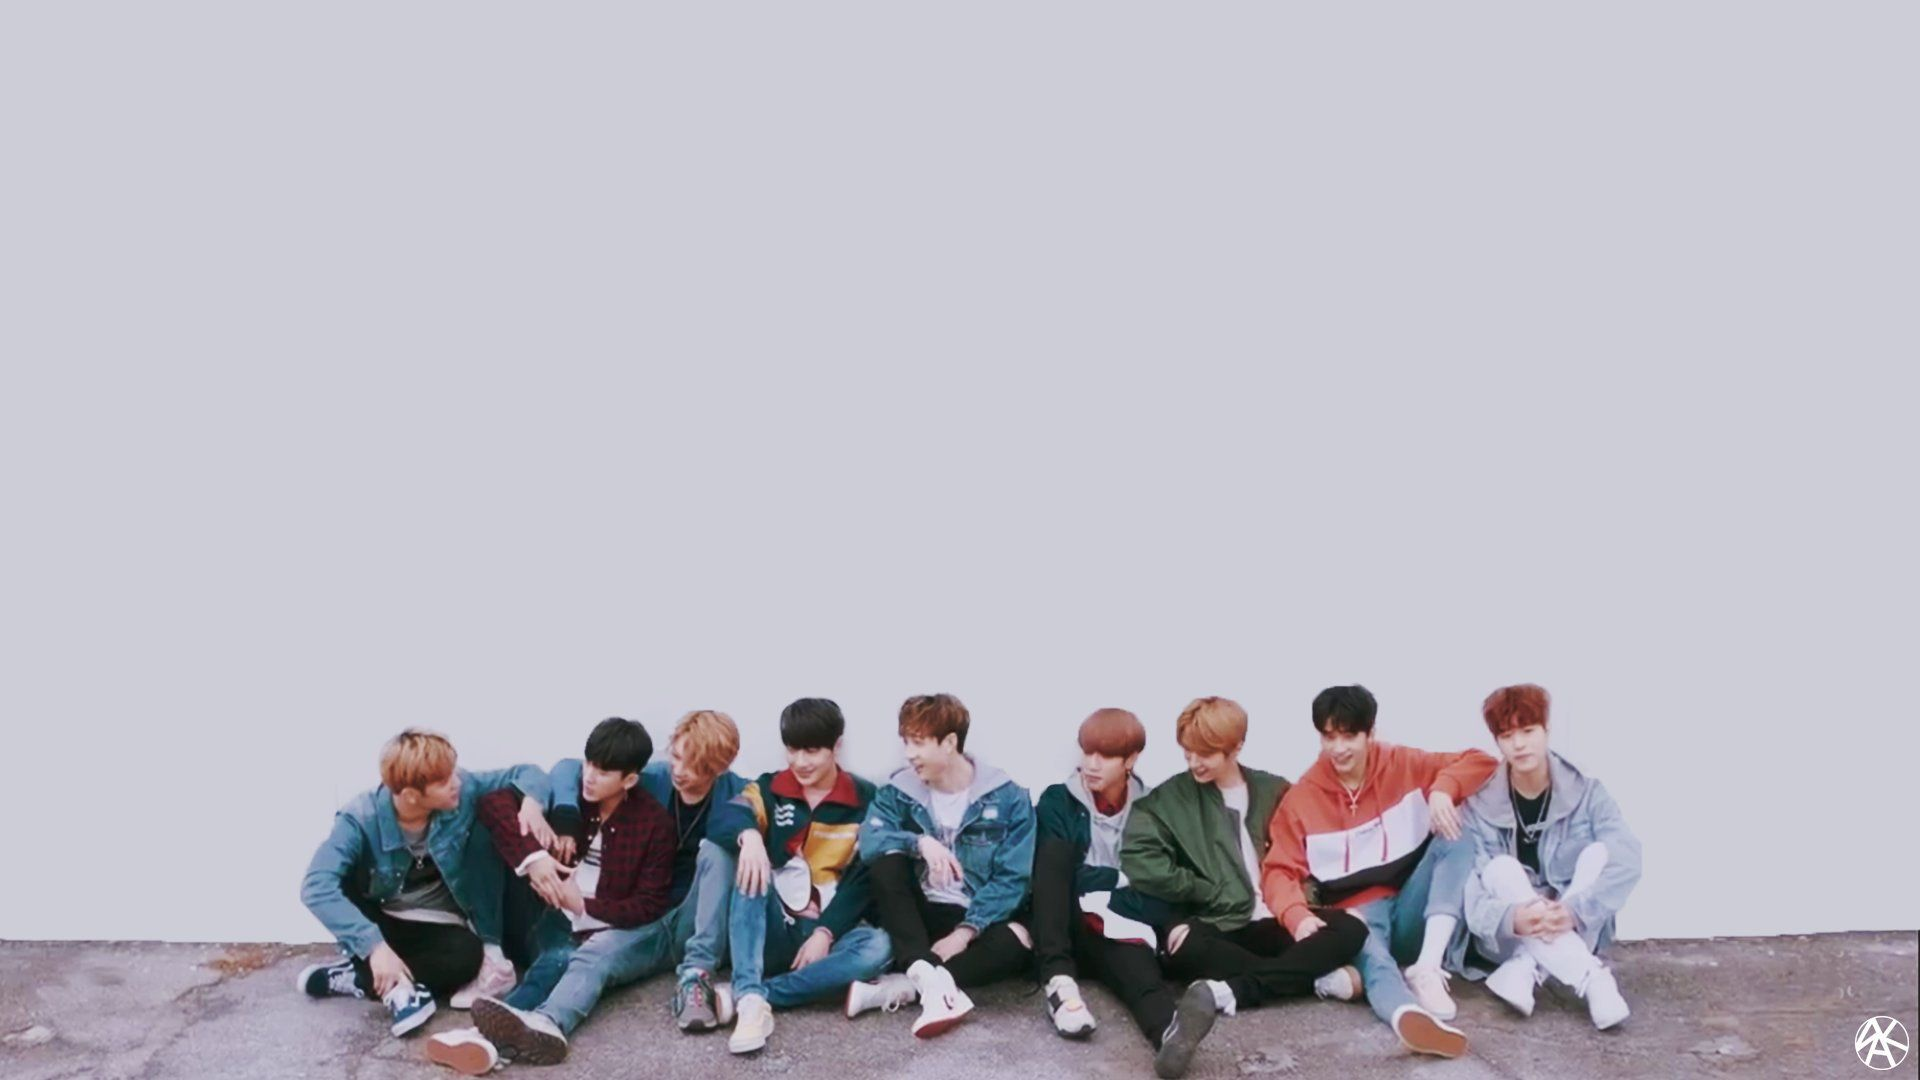 Stray Kids Wallpaper Hd Image Search Results Kids Wallpaper Aesthetic Desktop Wallpaper Desktop Wallpaper